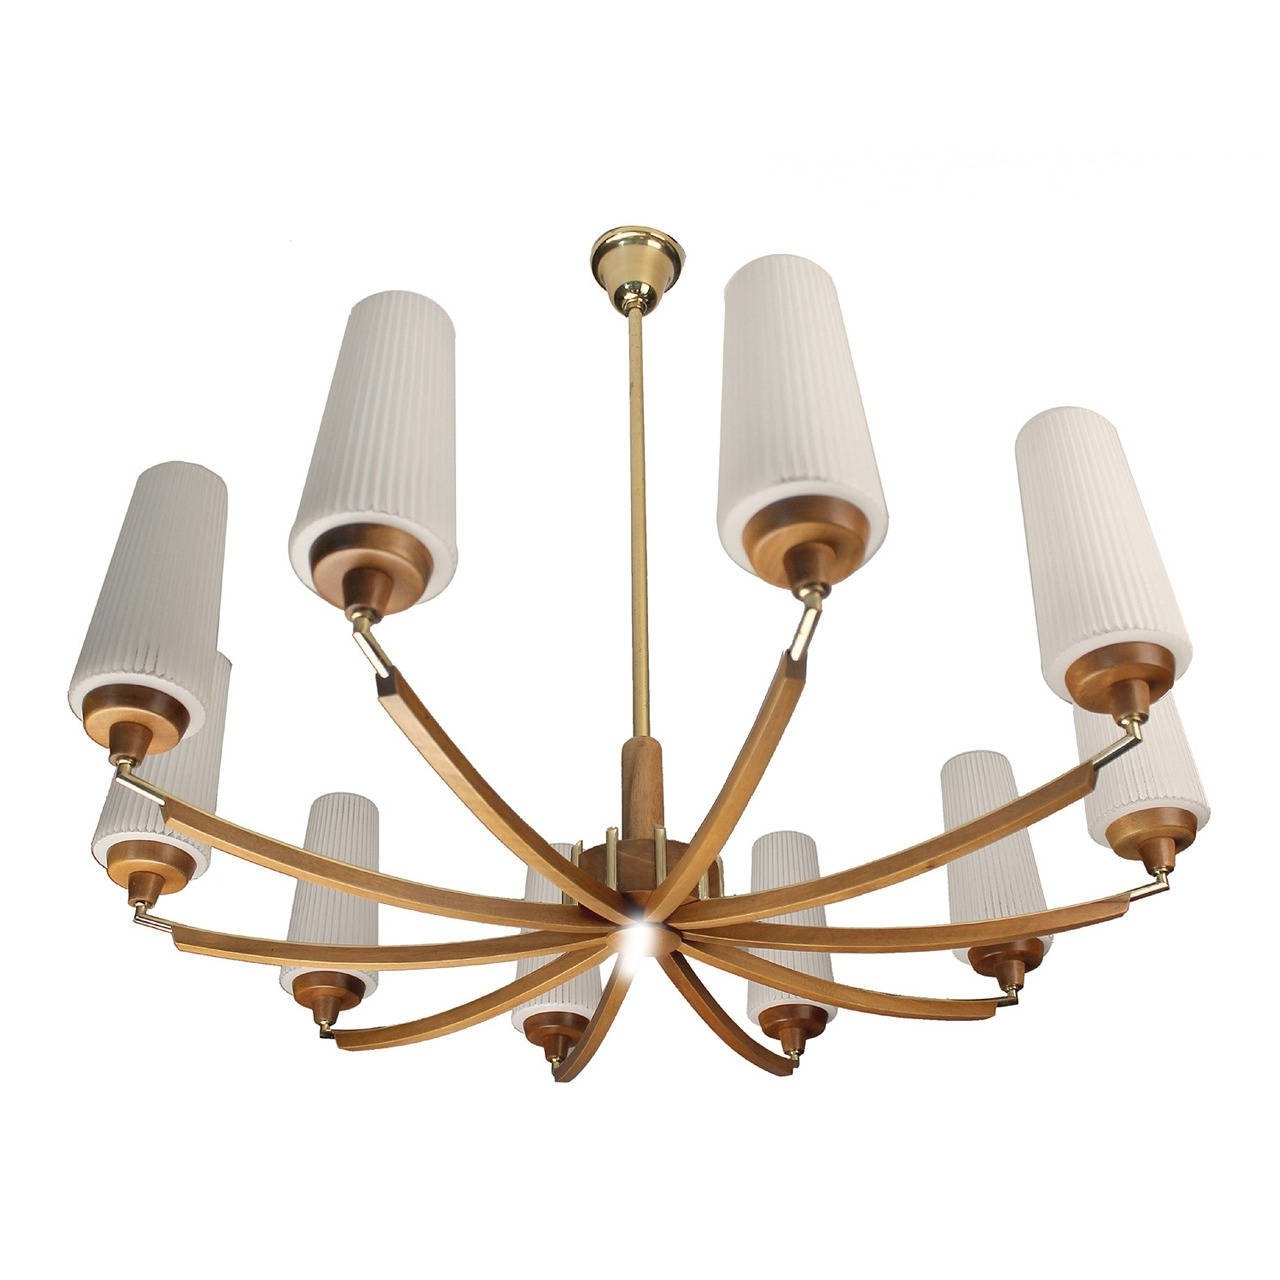 2019 Italian Wood And Brass Chandelier Glass Ceiling Fixture Mid Century Intended For Brass And Glass Chandelier (View 12 of 20)